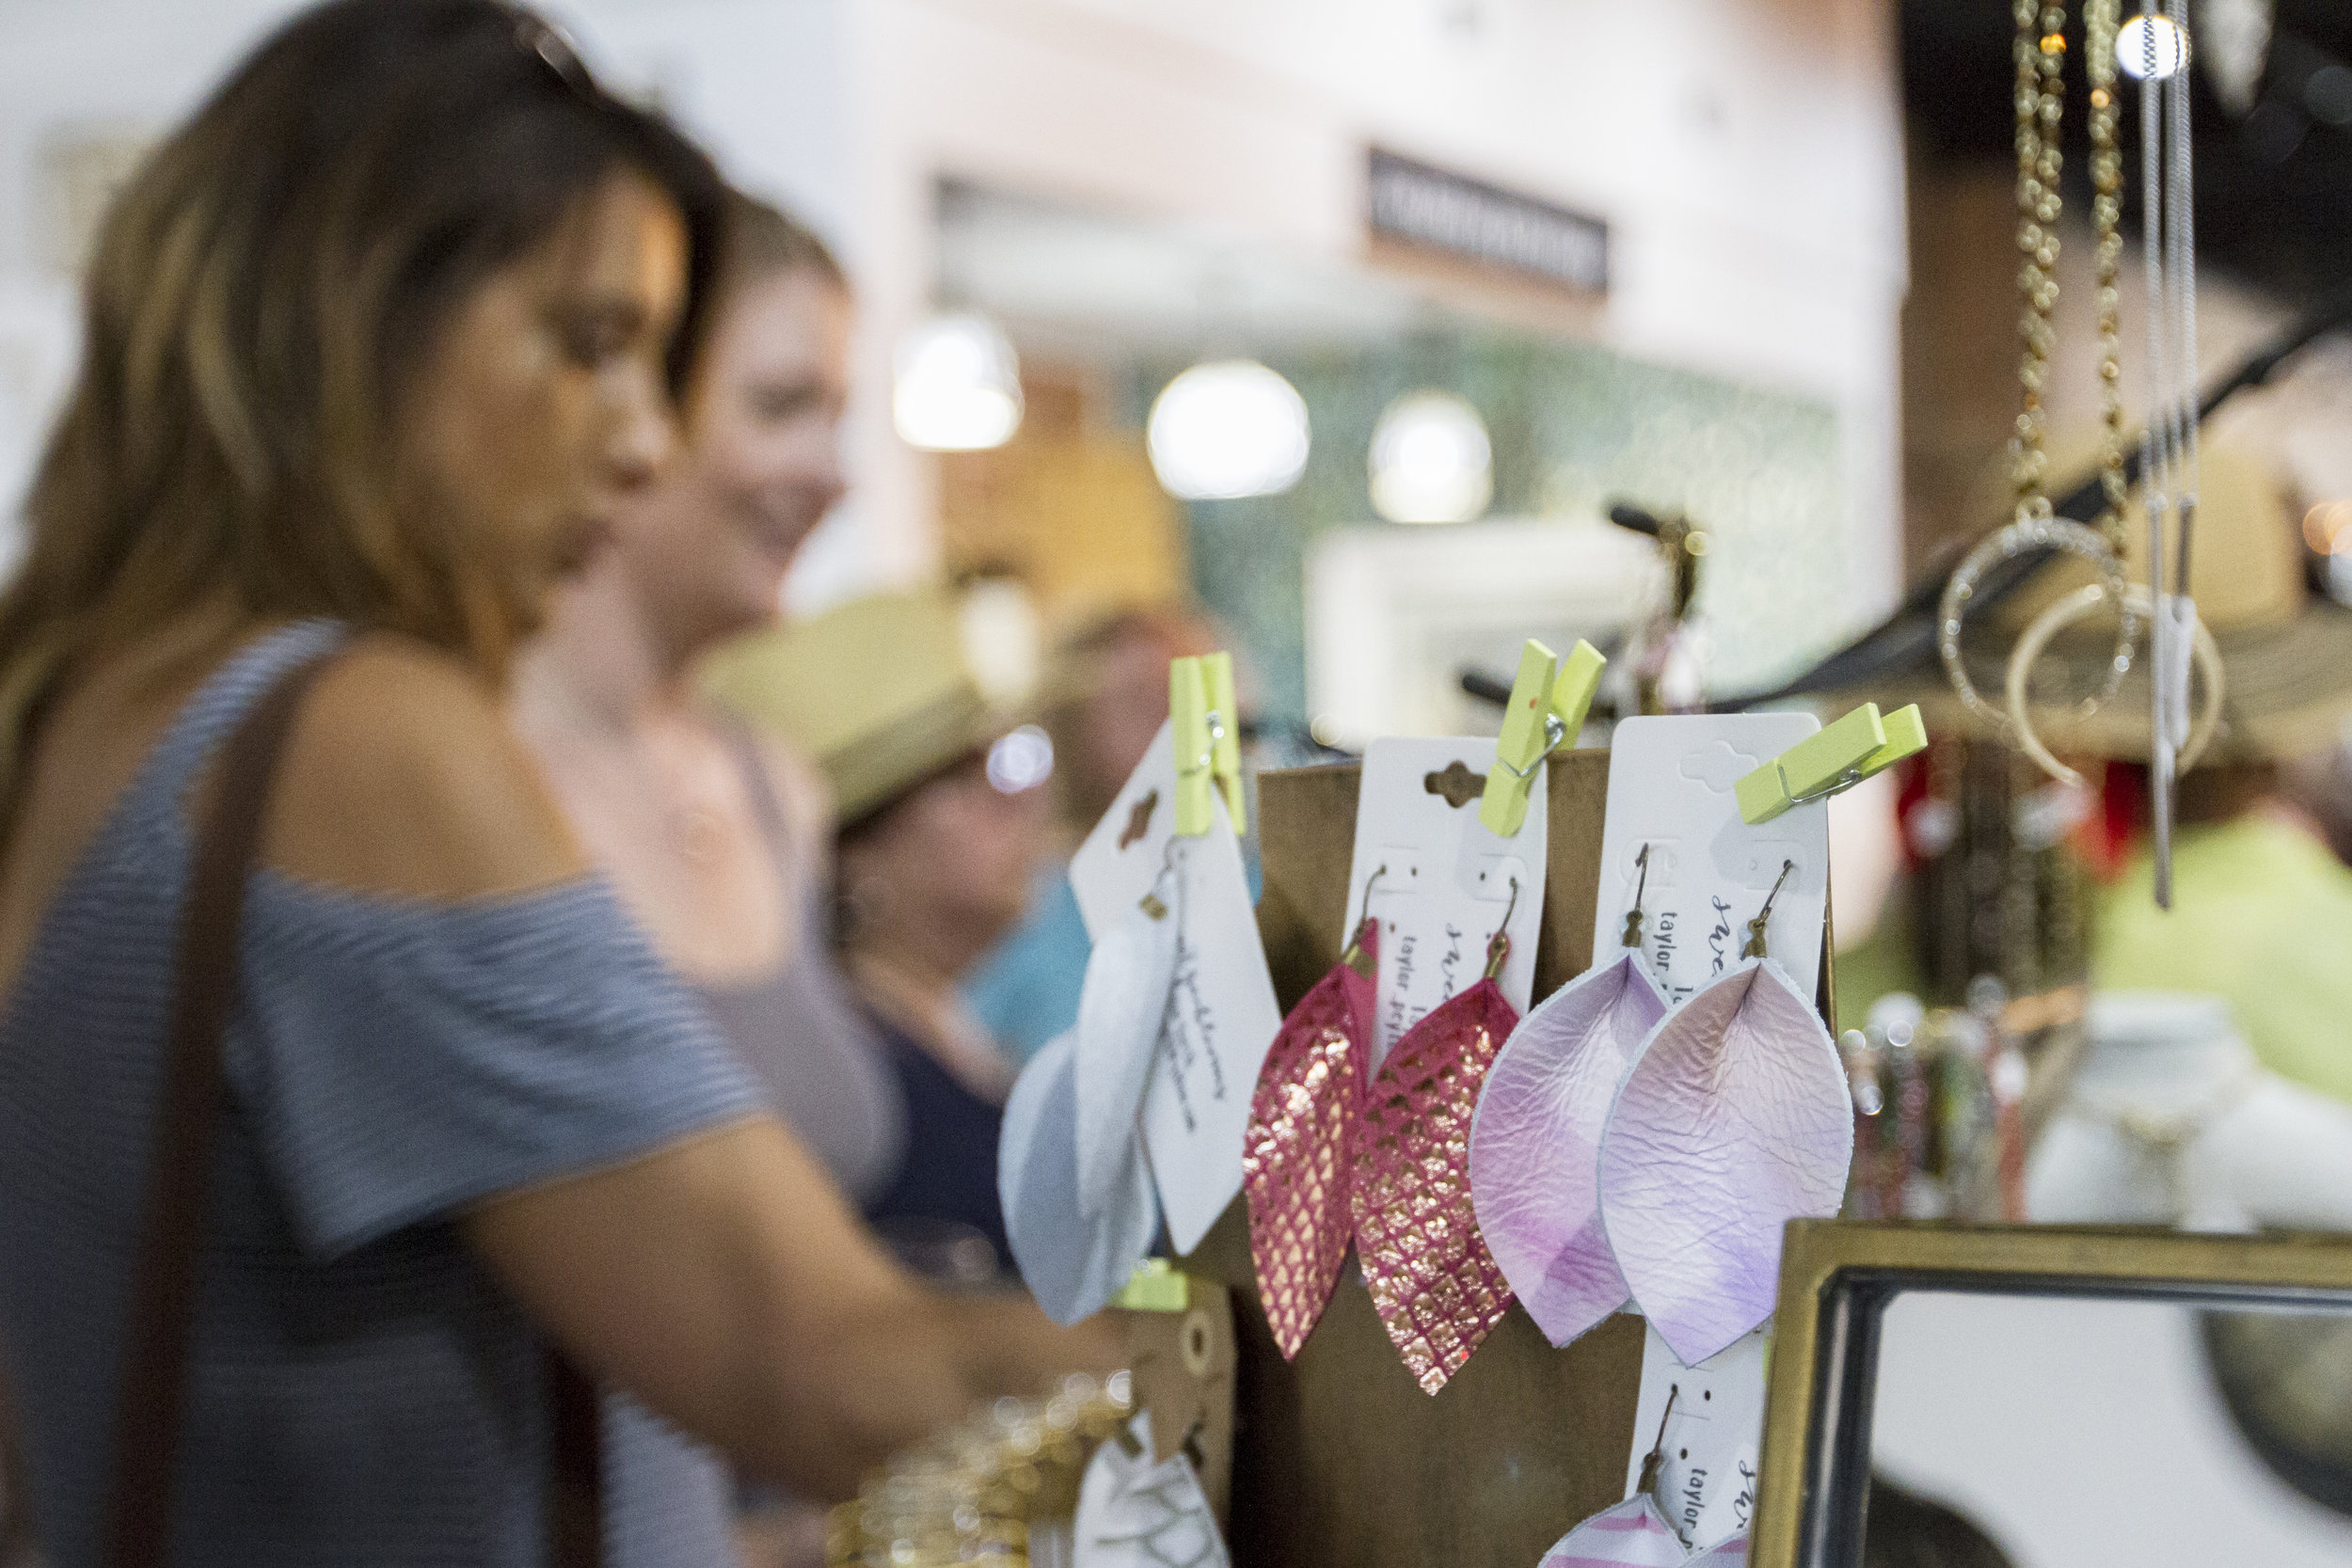 Shop Locally. - Our downtown merchants work hard daily to bring to our community the best selection of quality goods, often handmade right here in Denton or Denton County. Shop local, and you'll discover something unique and one of a kind.